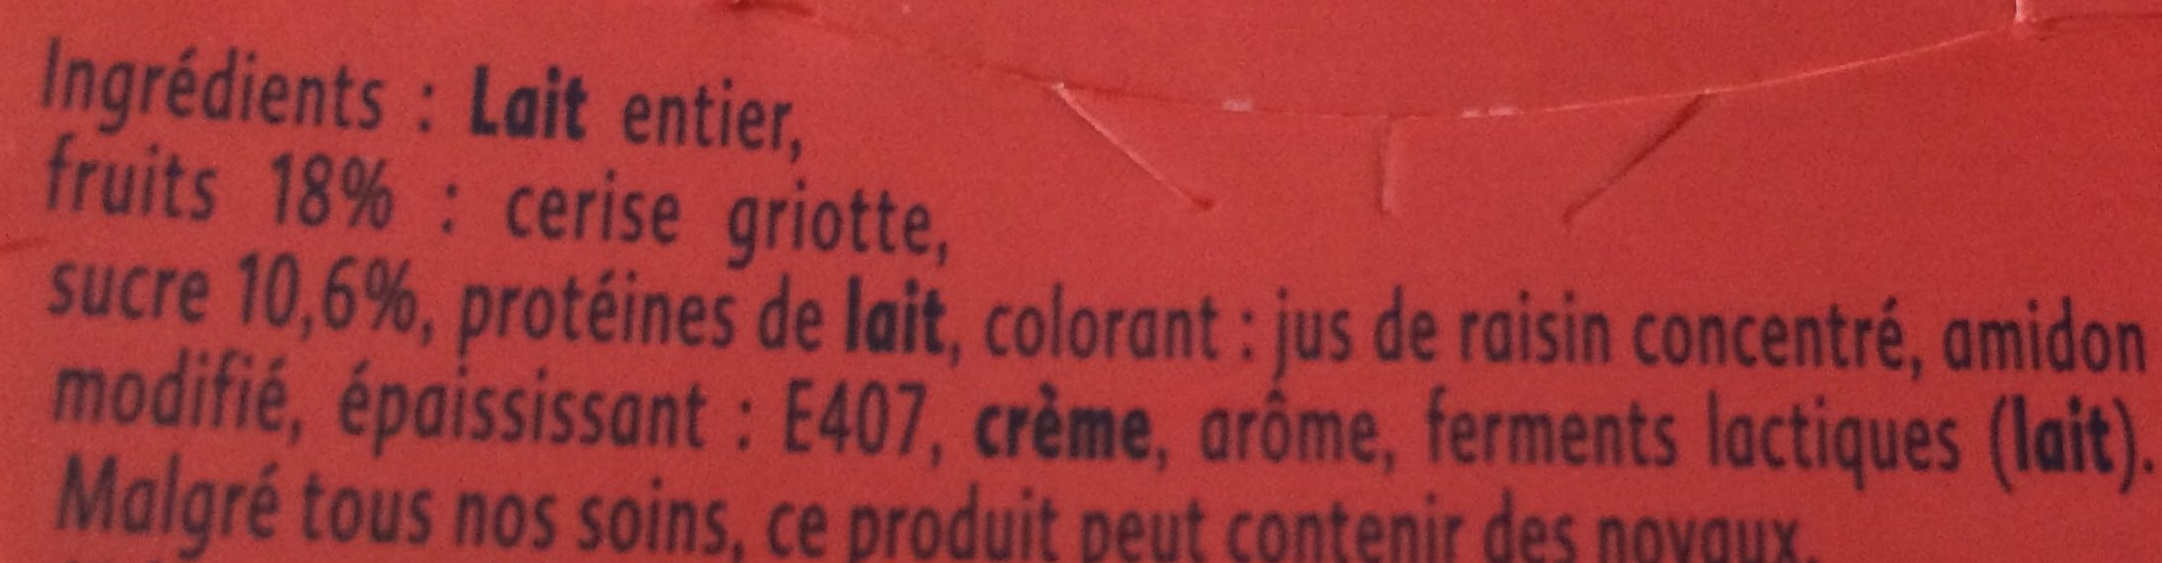 Yaourt cerises griottes - Ingredients